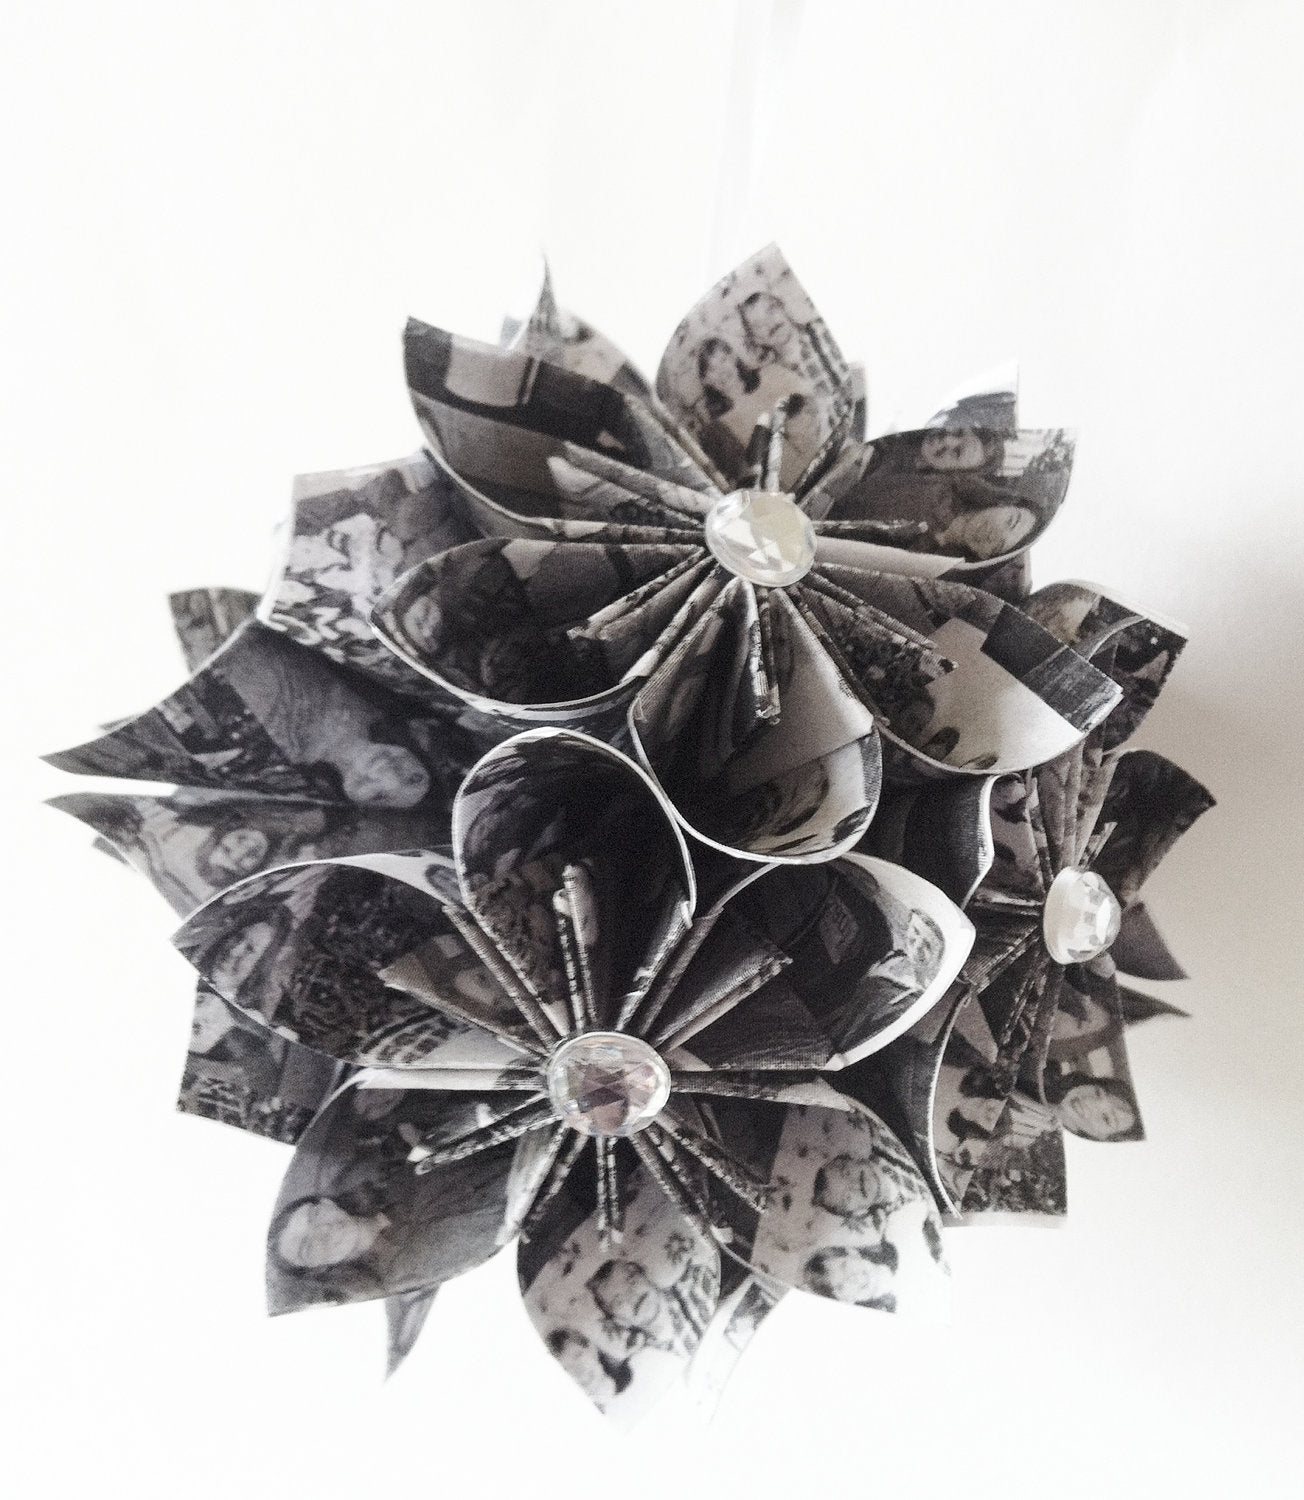 Paper Flower Memory Ornament- your family photos, 4 inch flower ball, black and white, one of a kind origami,  first anniversary